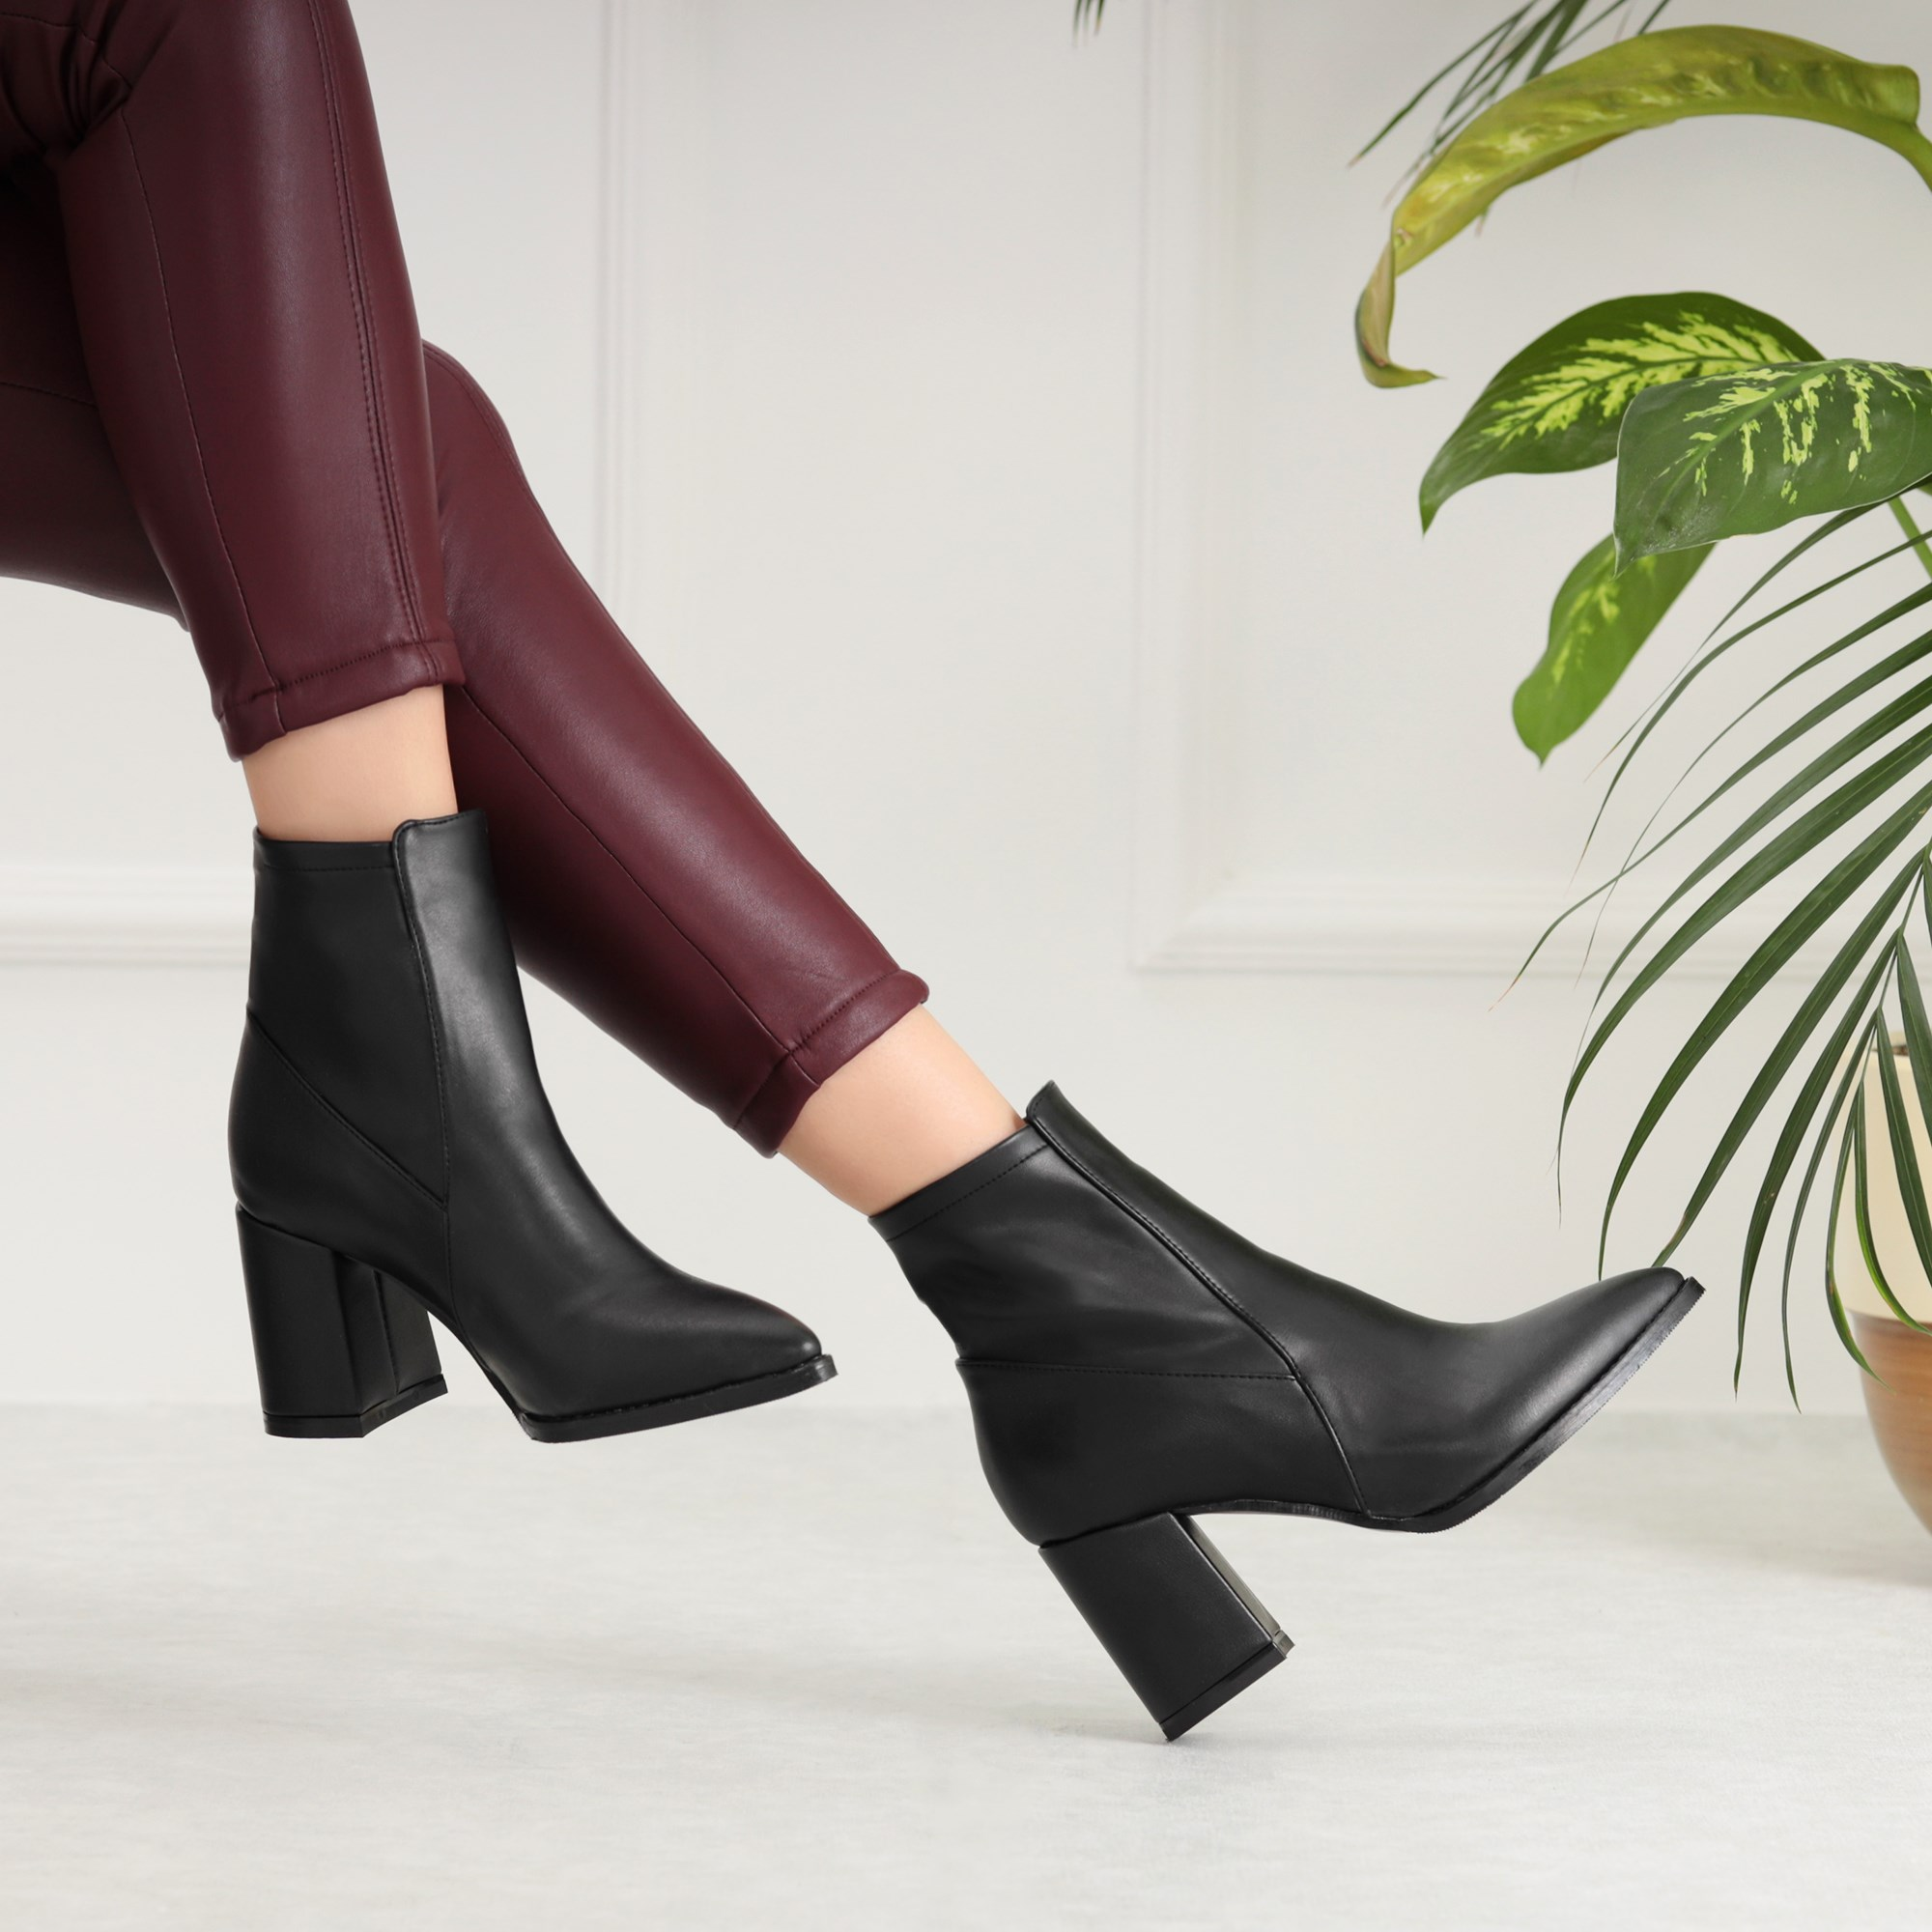 Norsina Black Pointed Toe Heels Boots